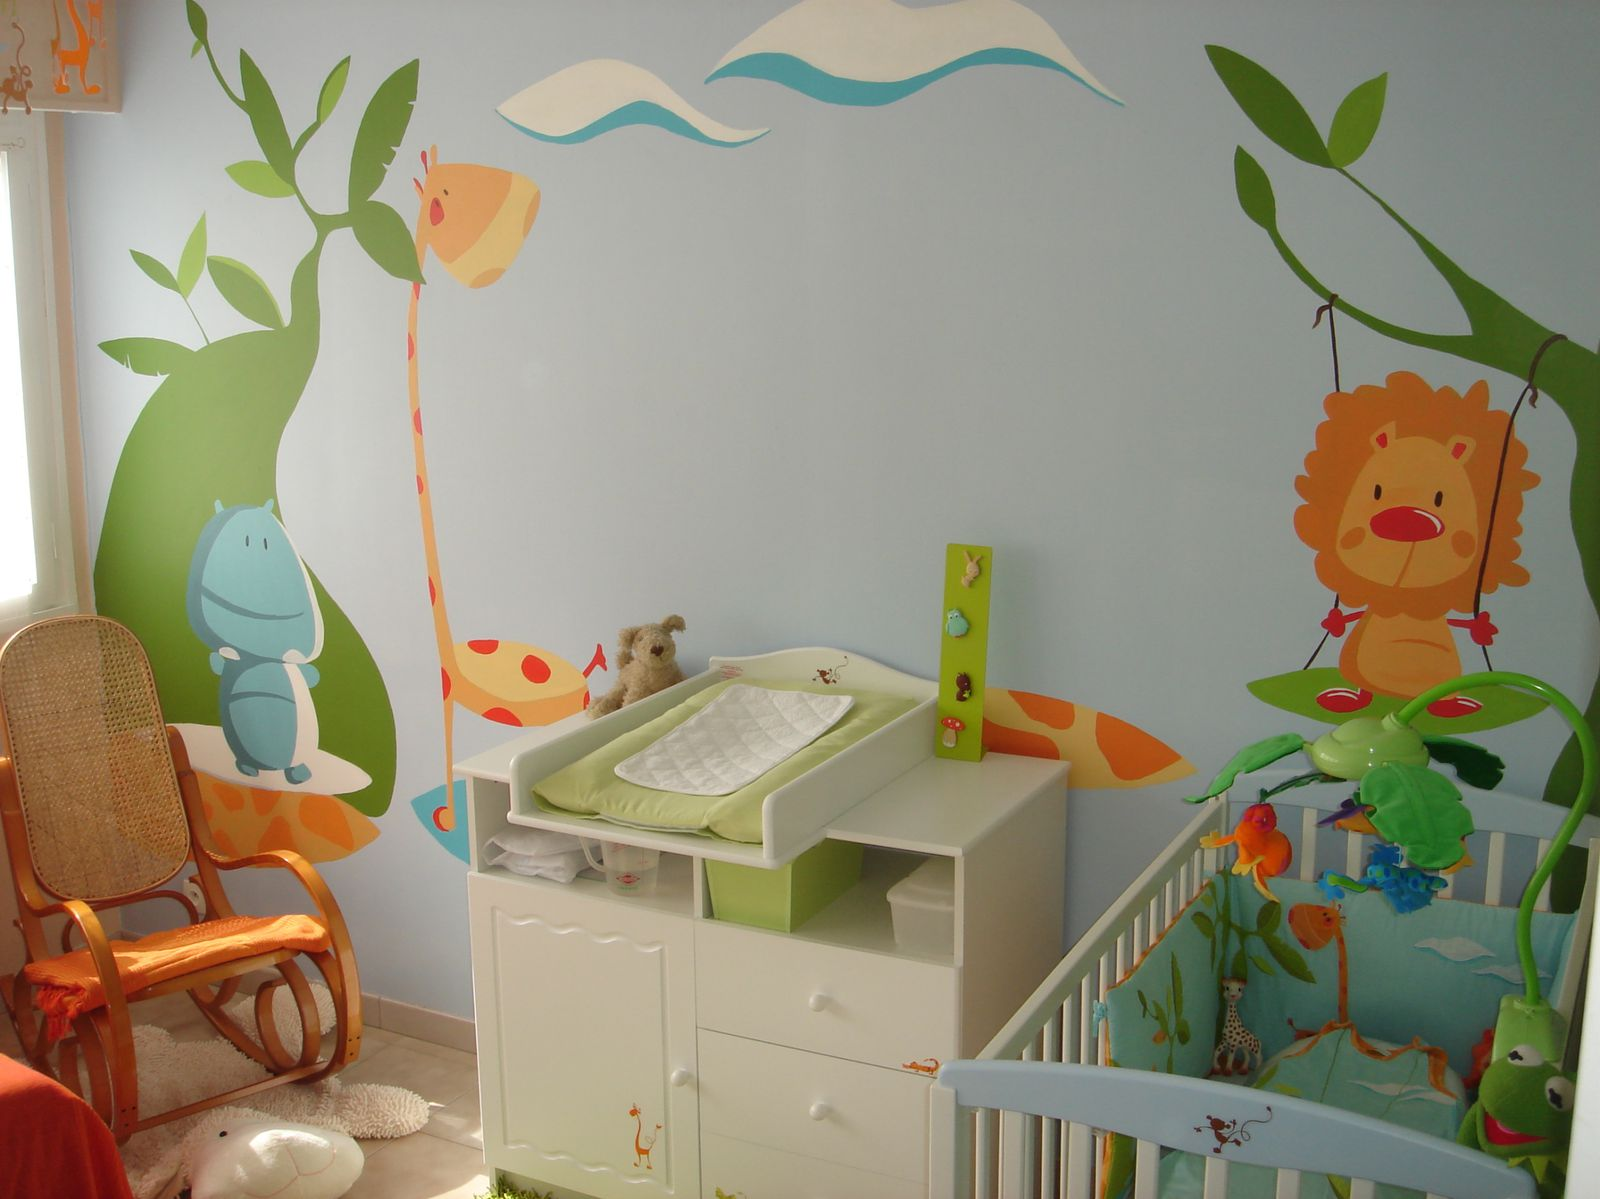 D co de chambre b b jank artiste peintre decorateur - Decoration murale chambre bebe fille ...